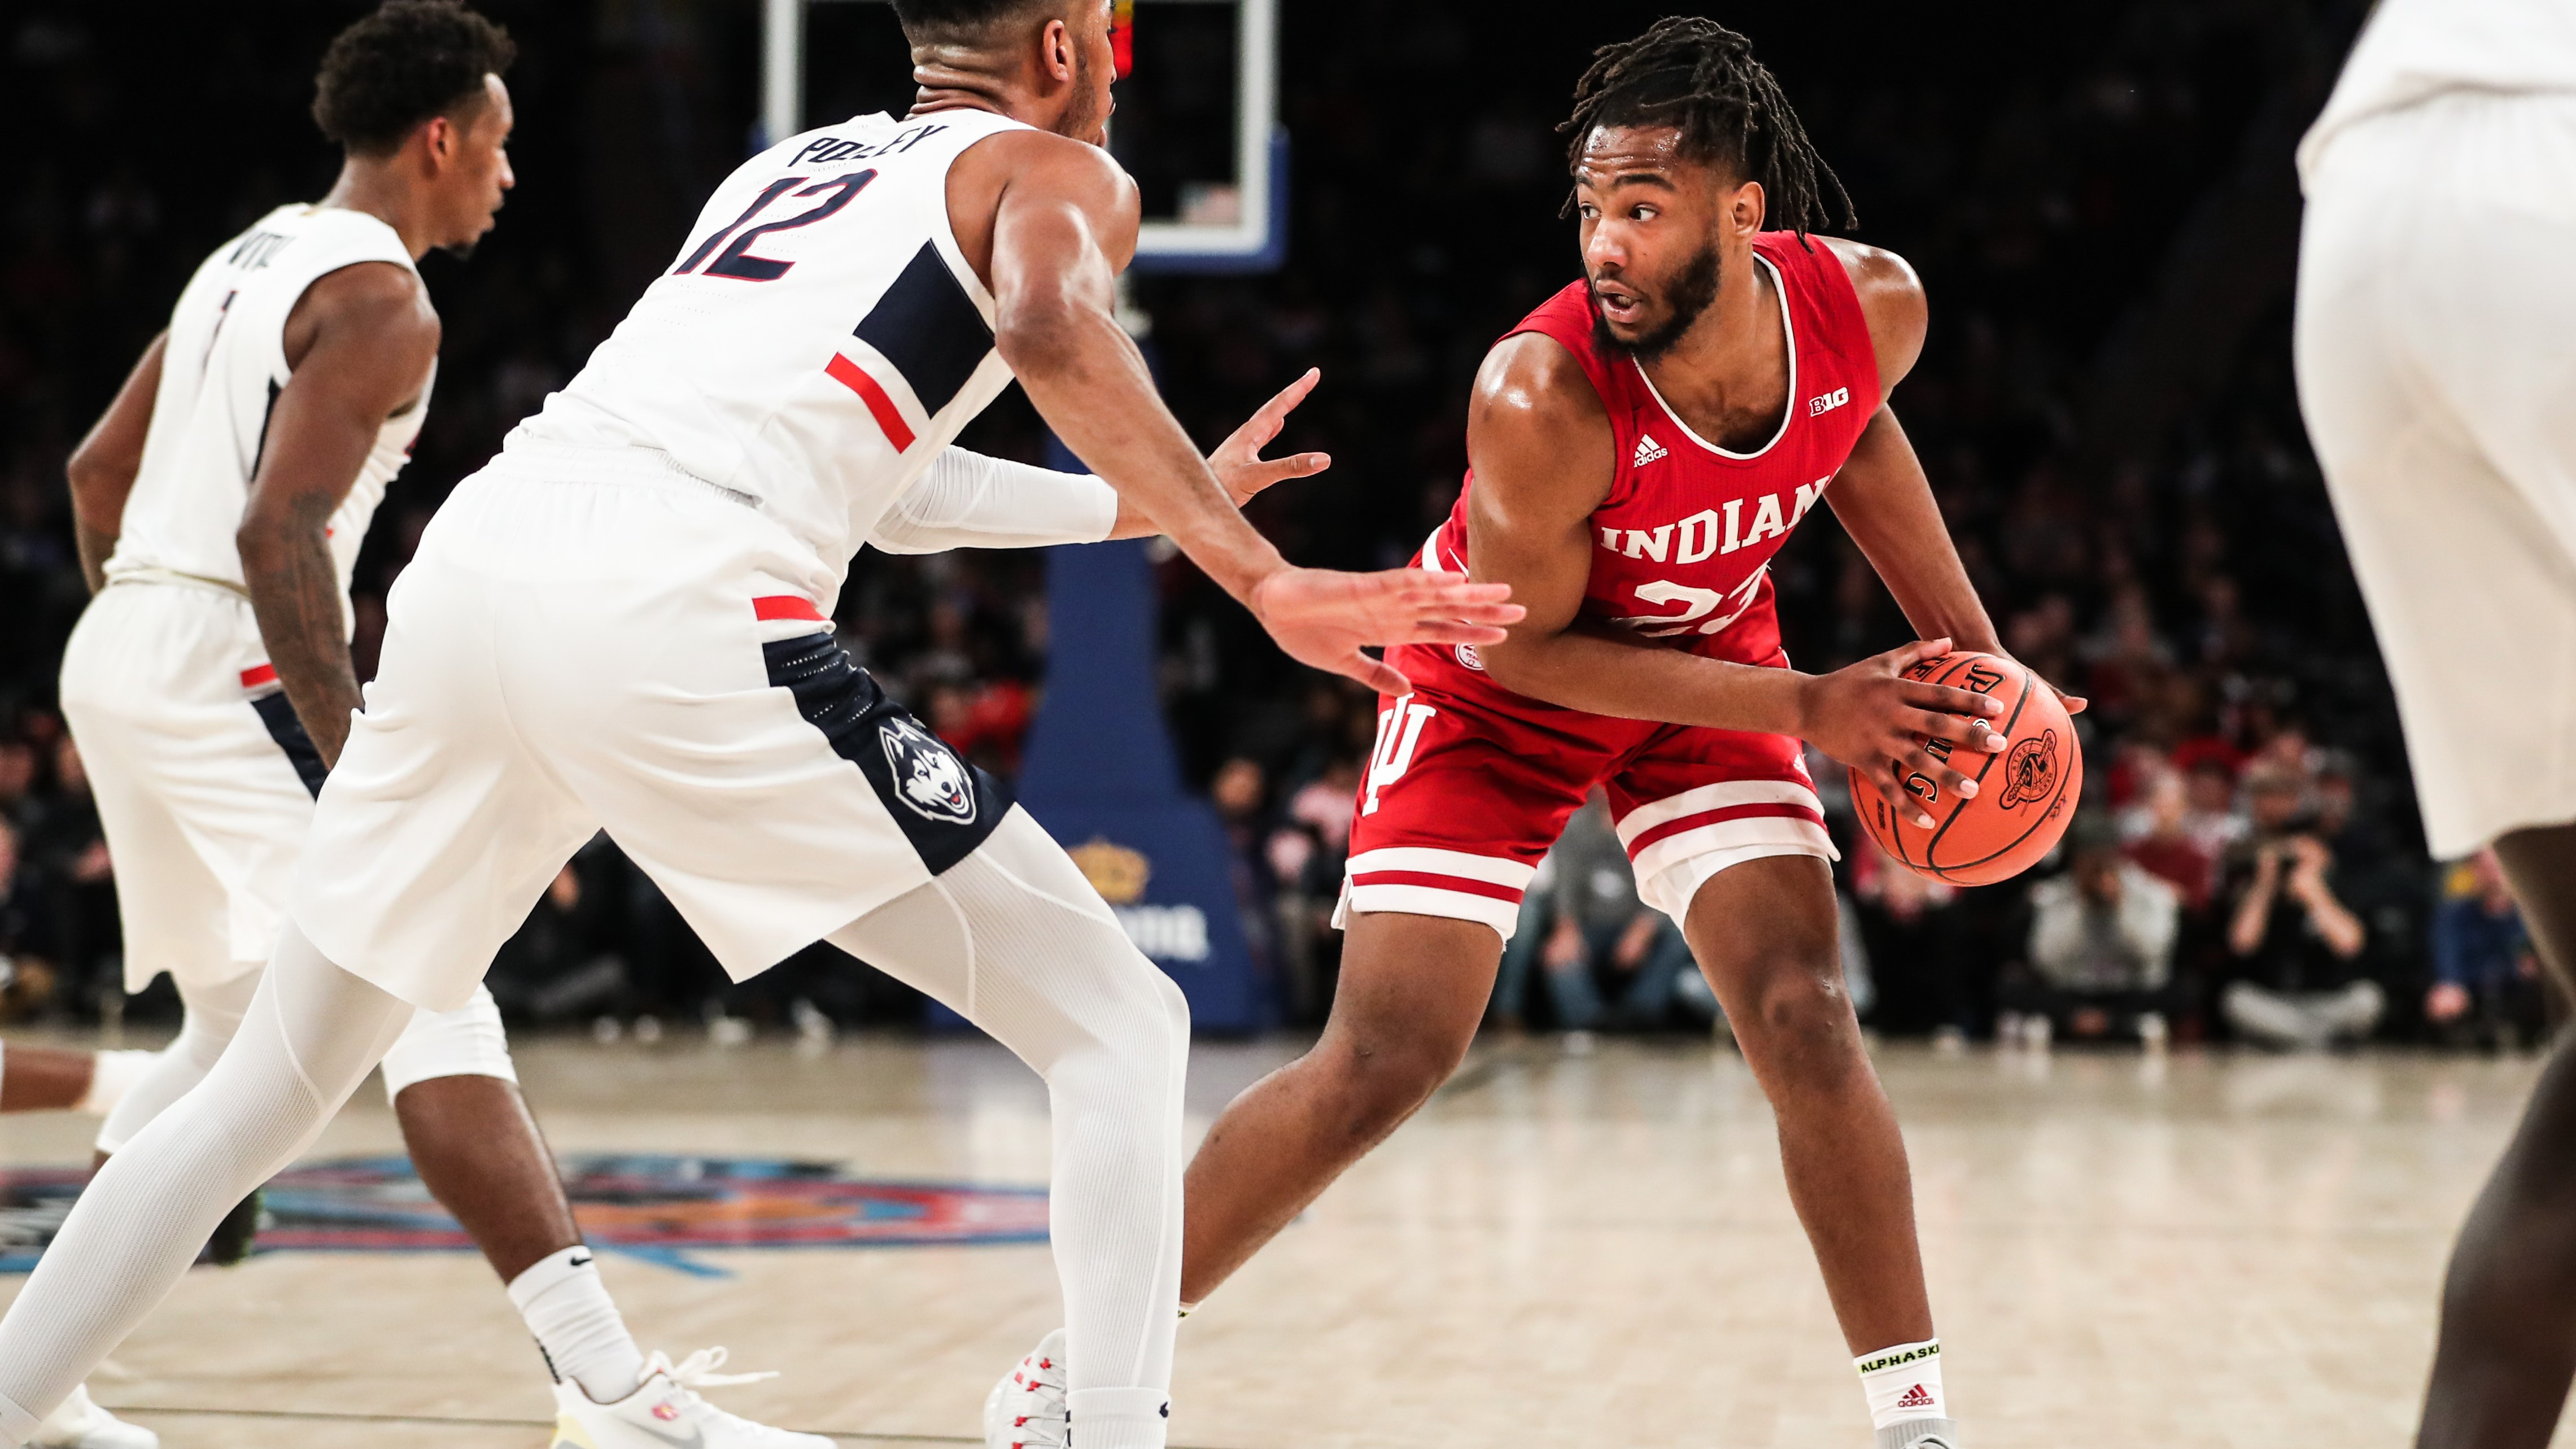 NOTES: IU Welcomes Nebraska for Conference Home Opener